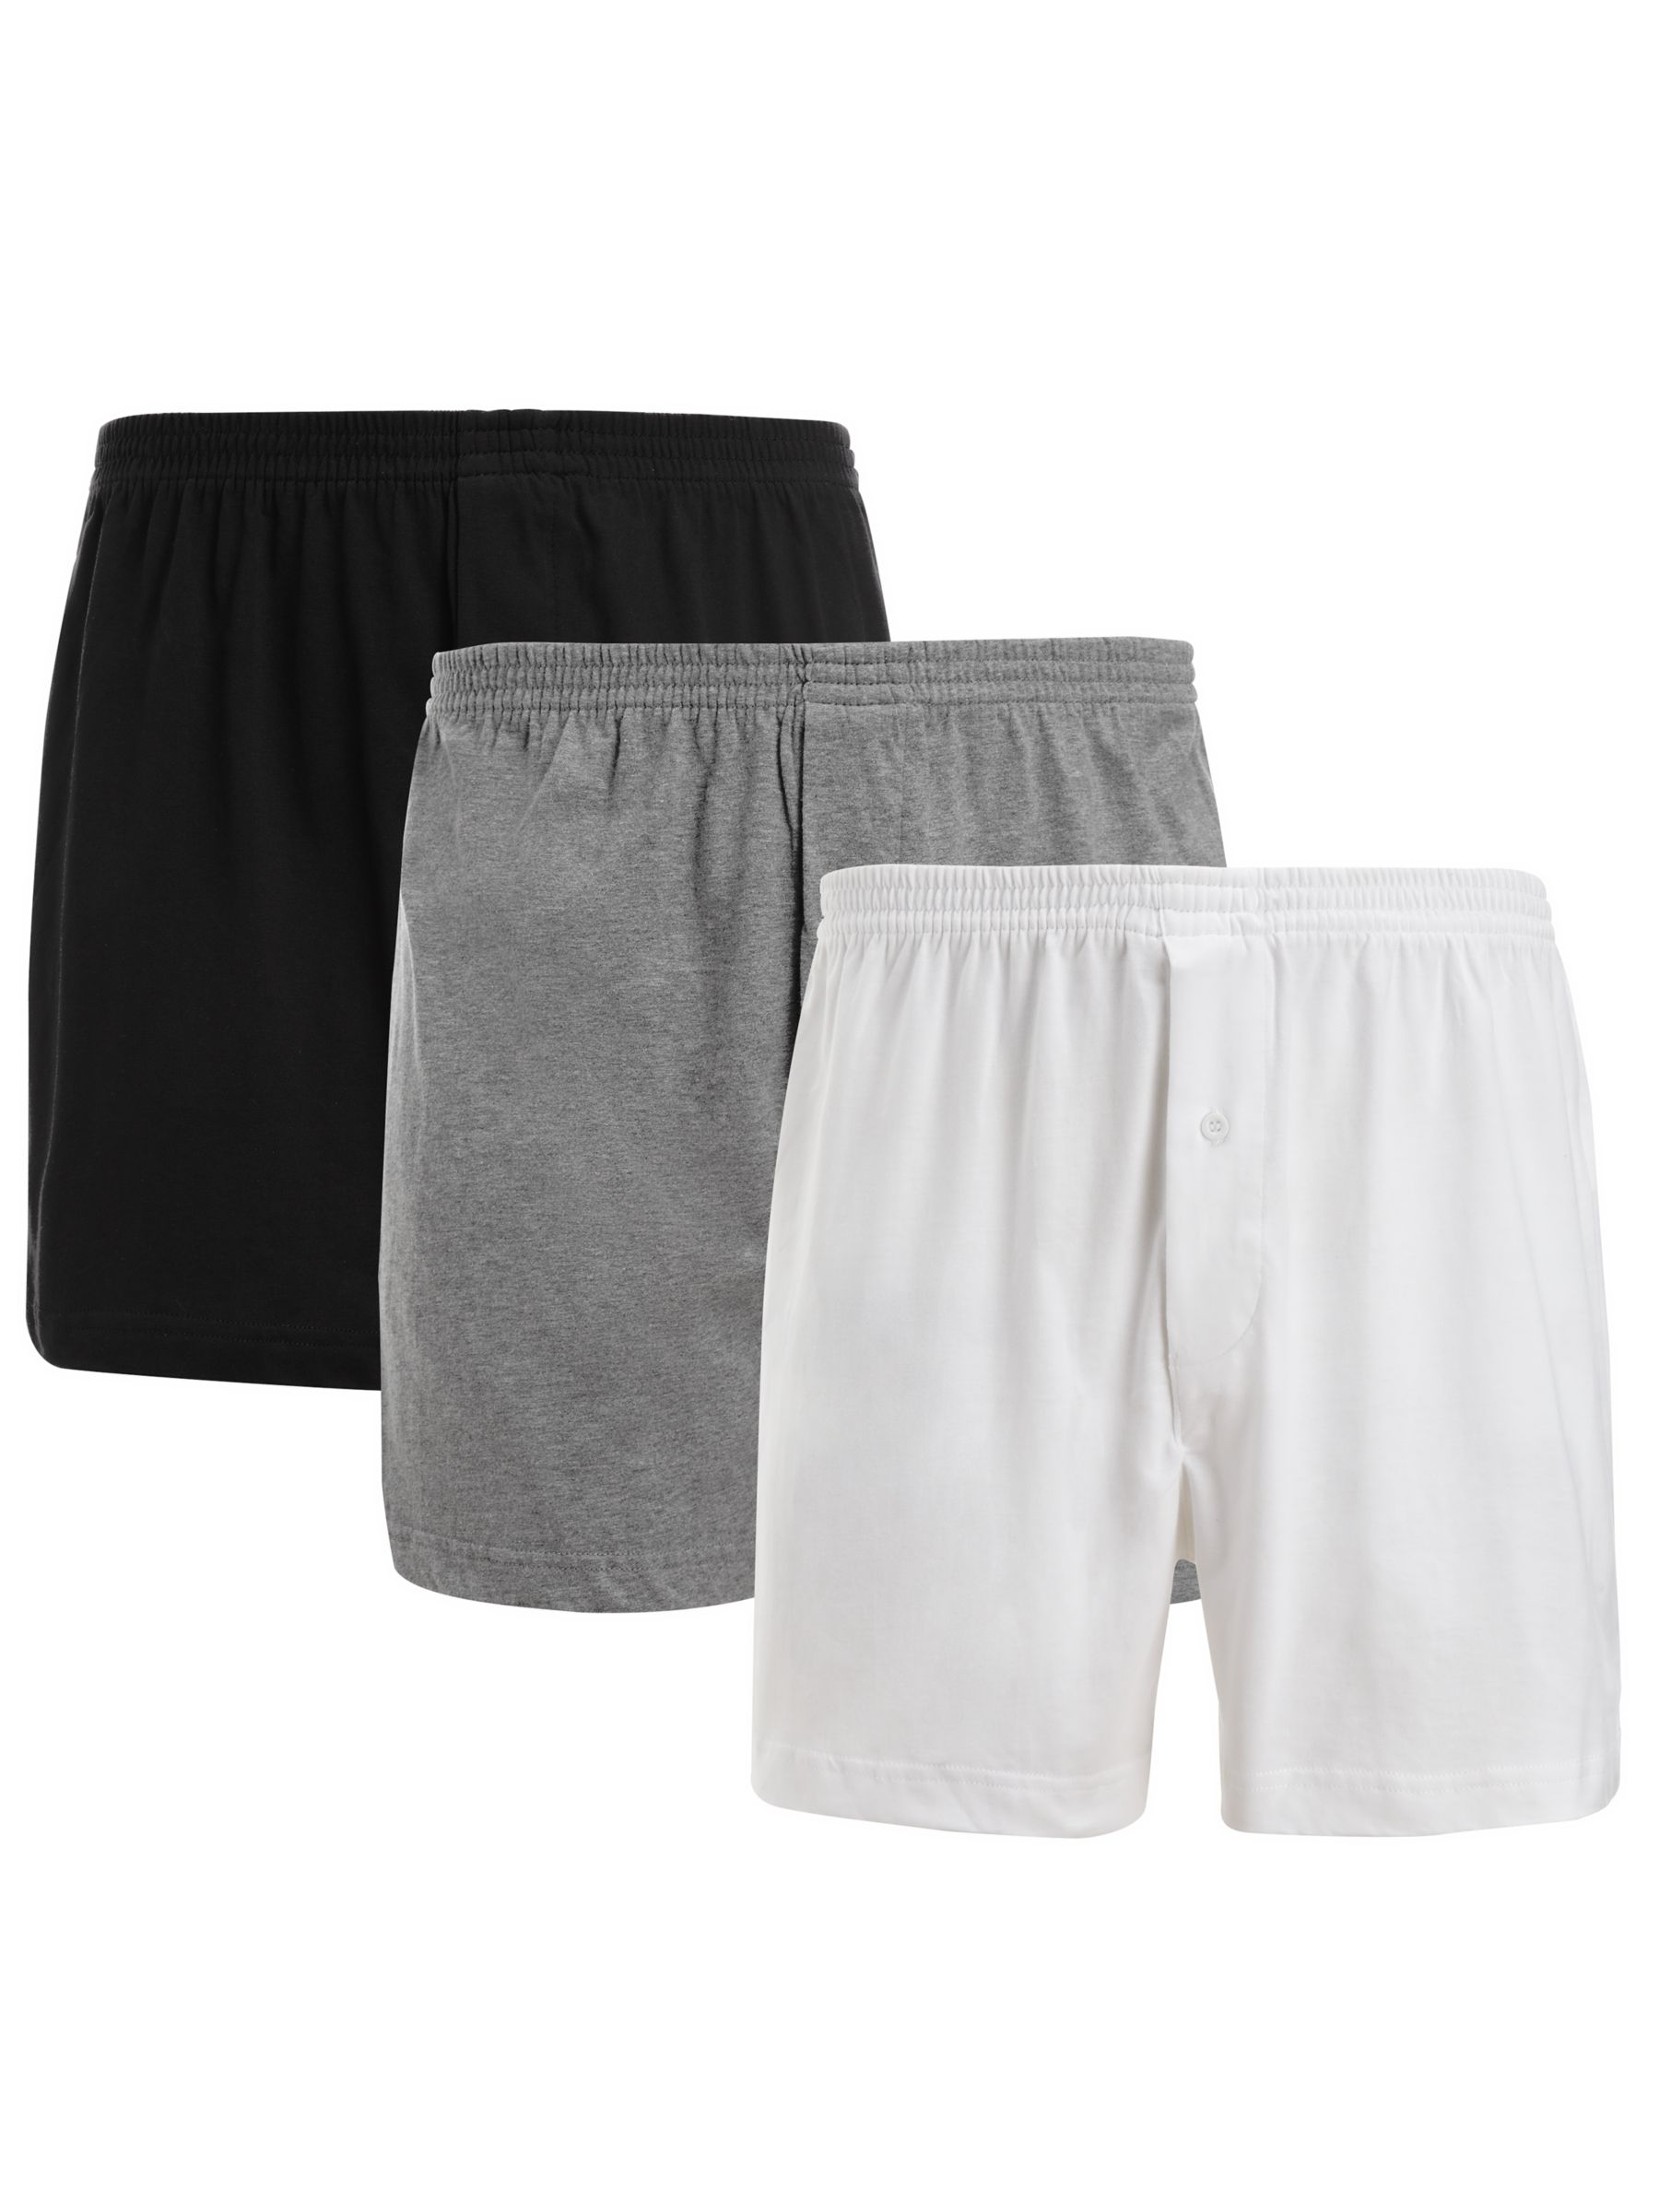 John Lewis Organic Jersey Cotton Boxers, Pack of 3, White/Grey/Black